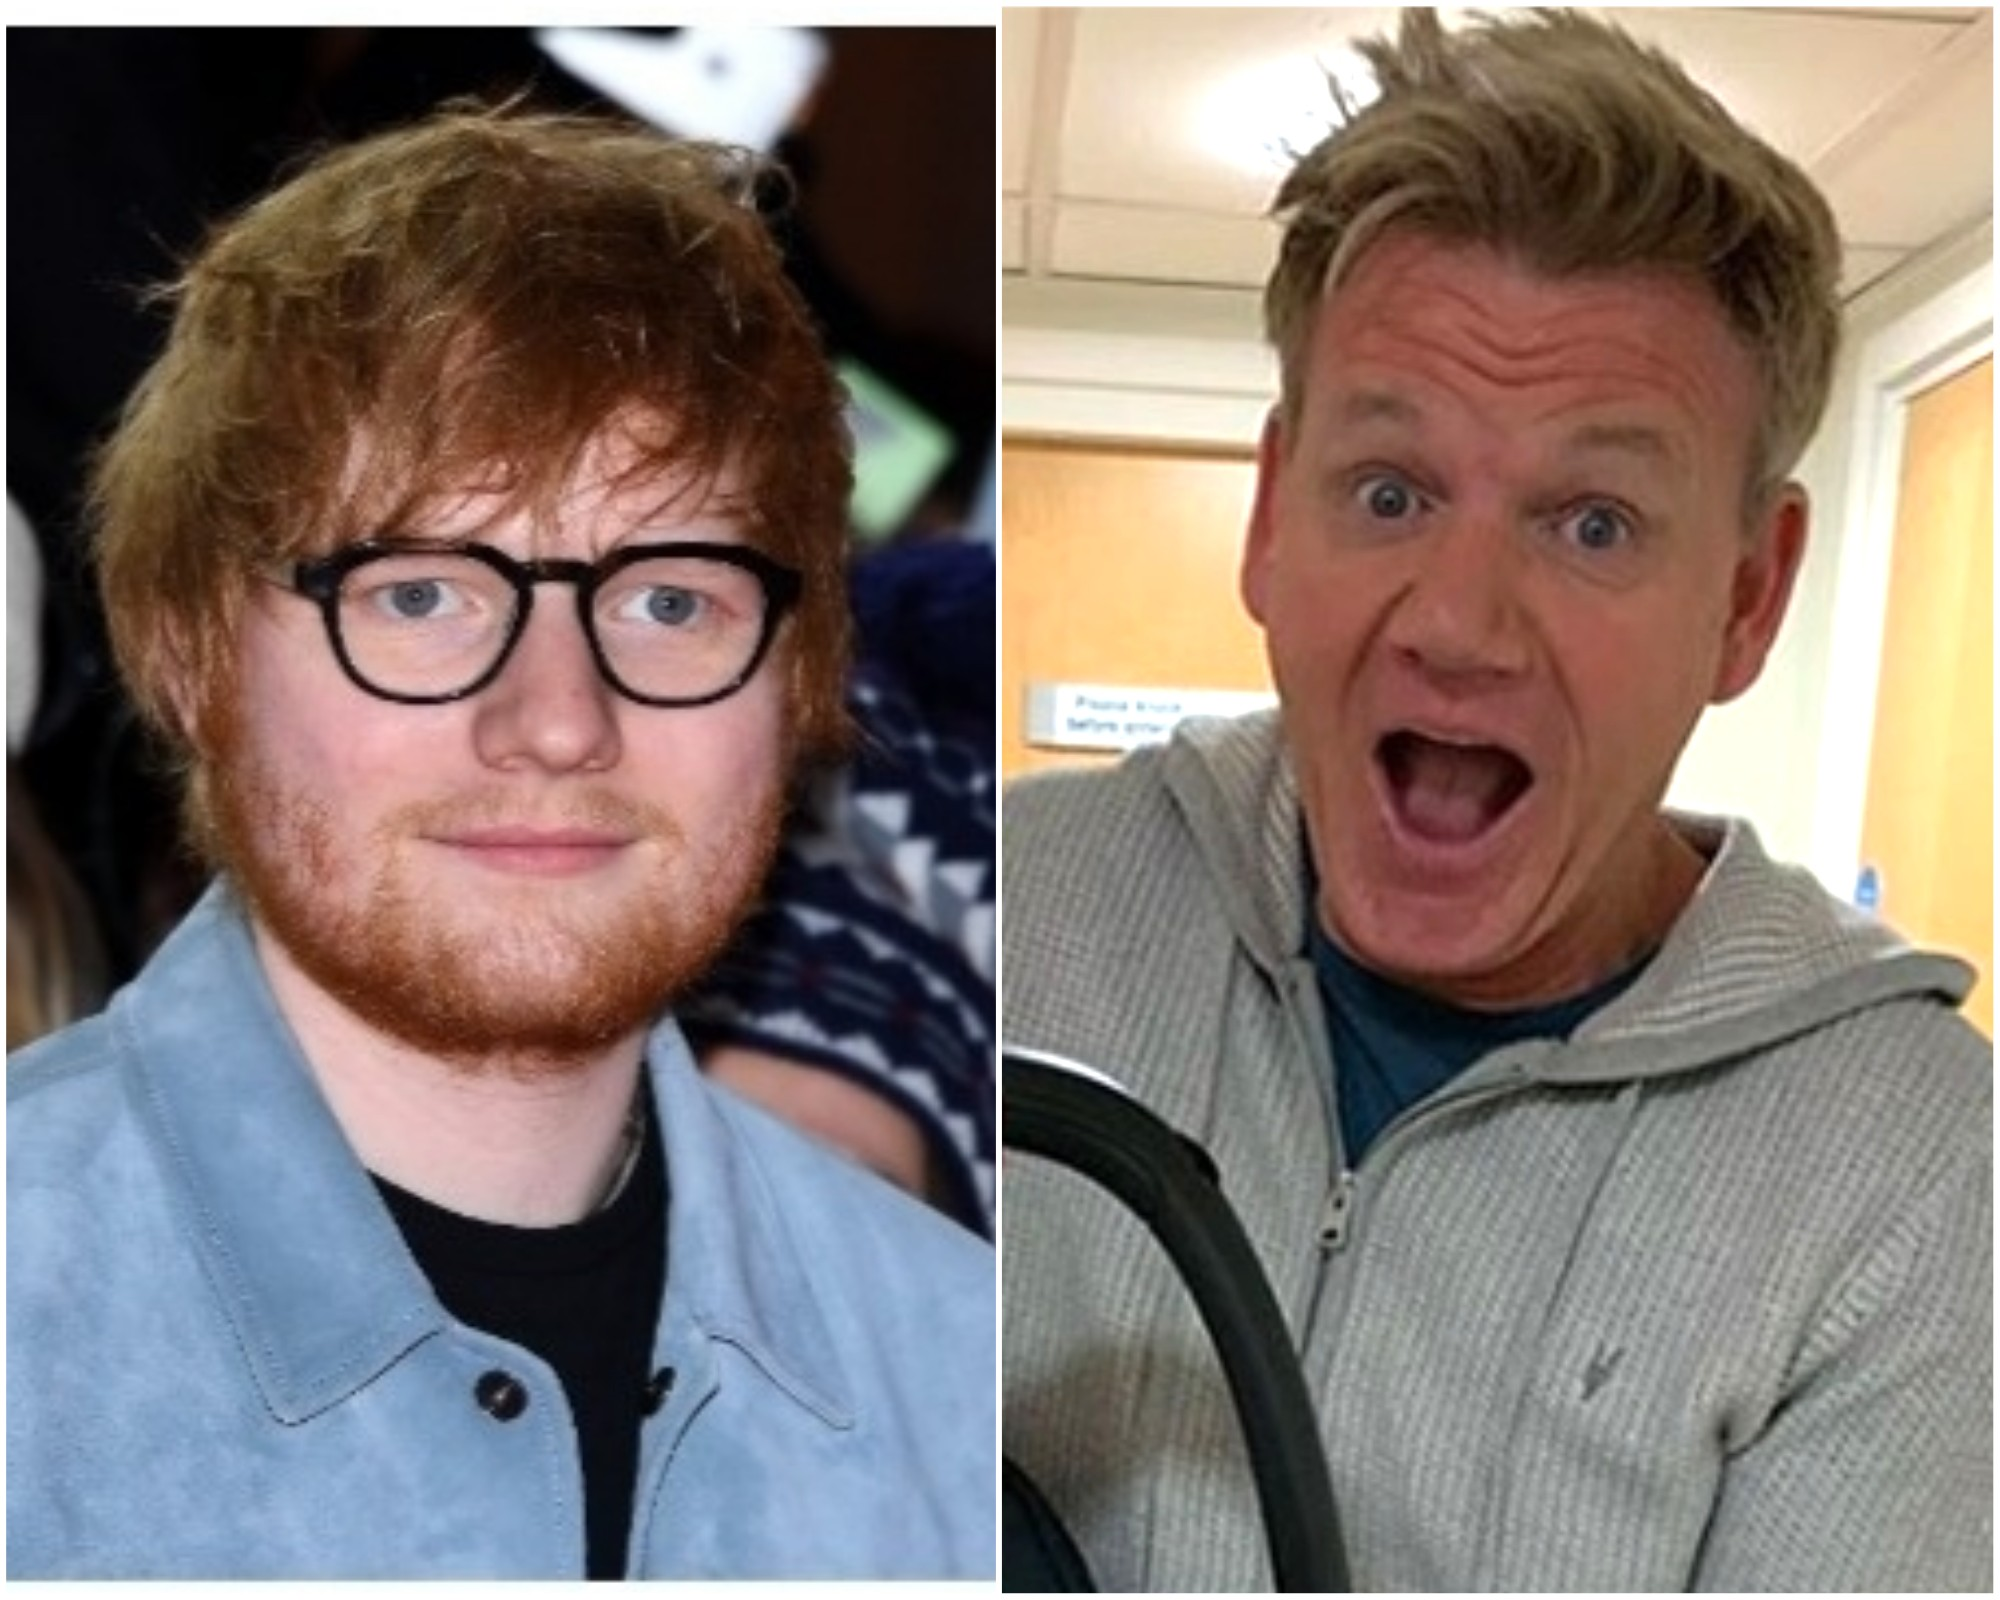 Ed Sheeran e Gordon Ramsay (Foto: Getty Images / Instagram)